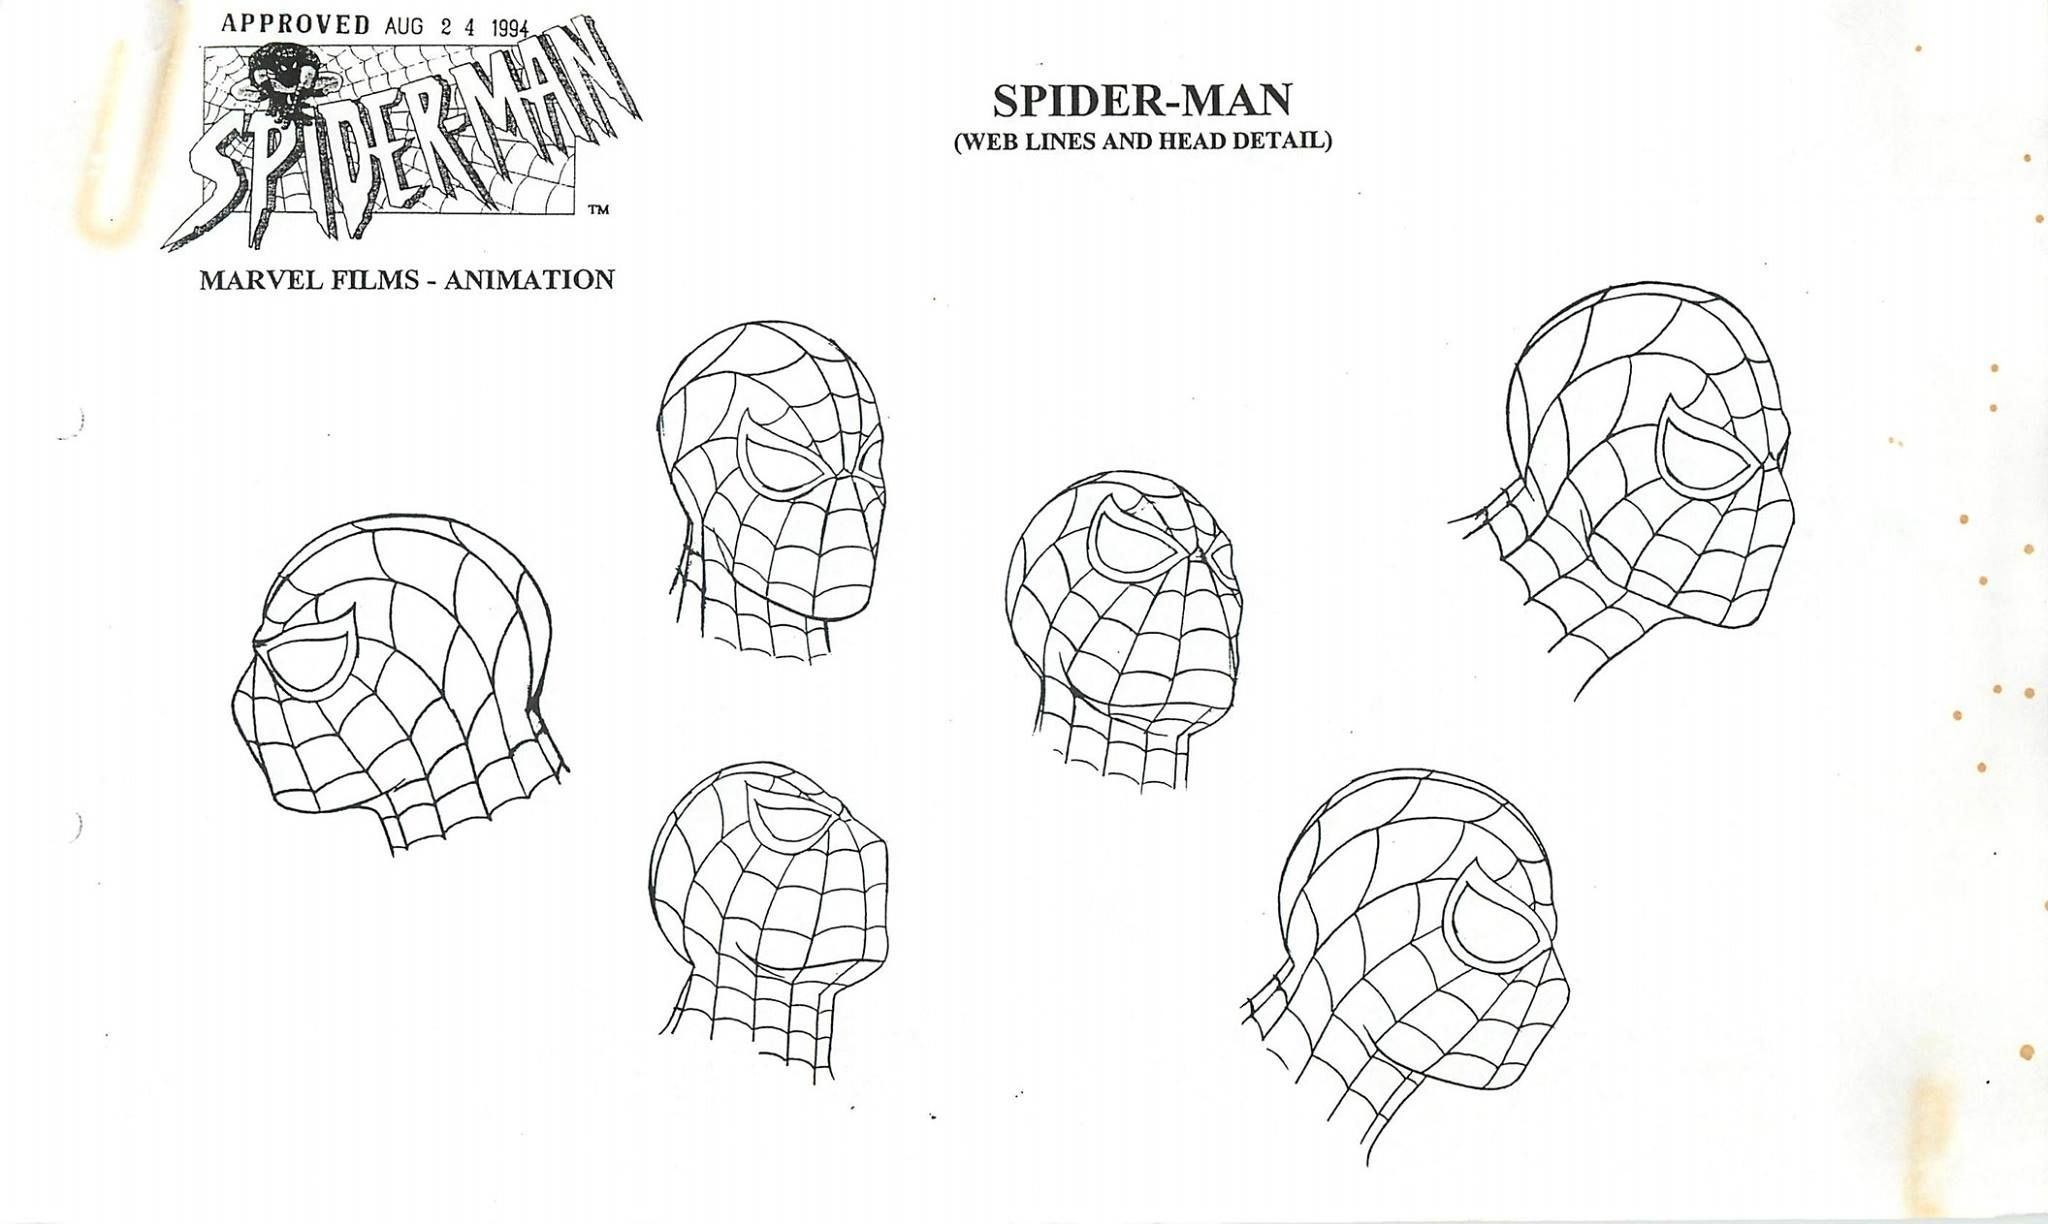 Character Designs from Spider-Man: The Animated Series